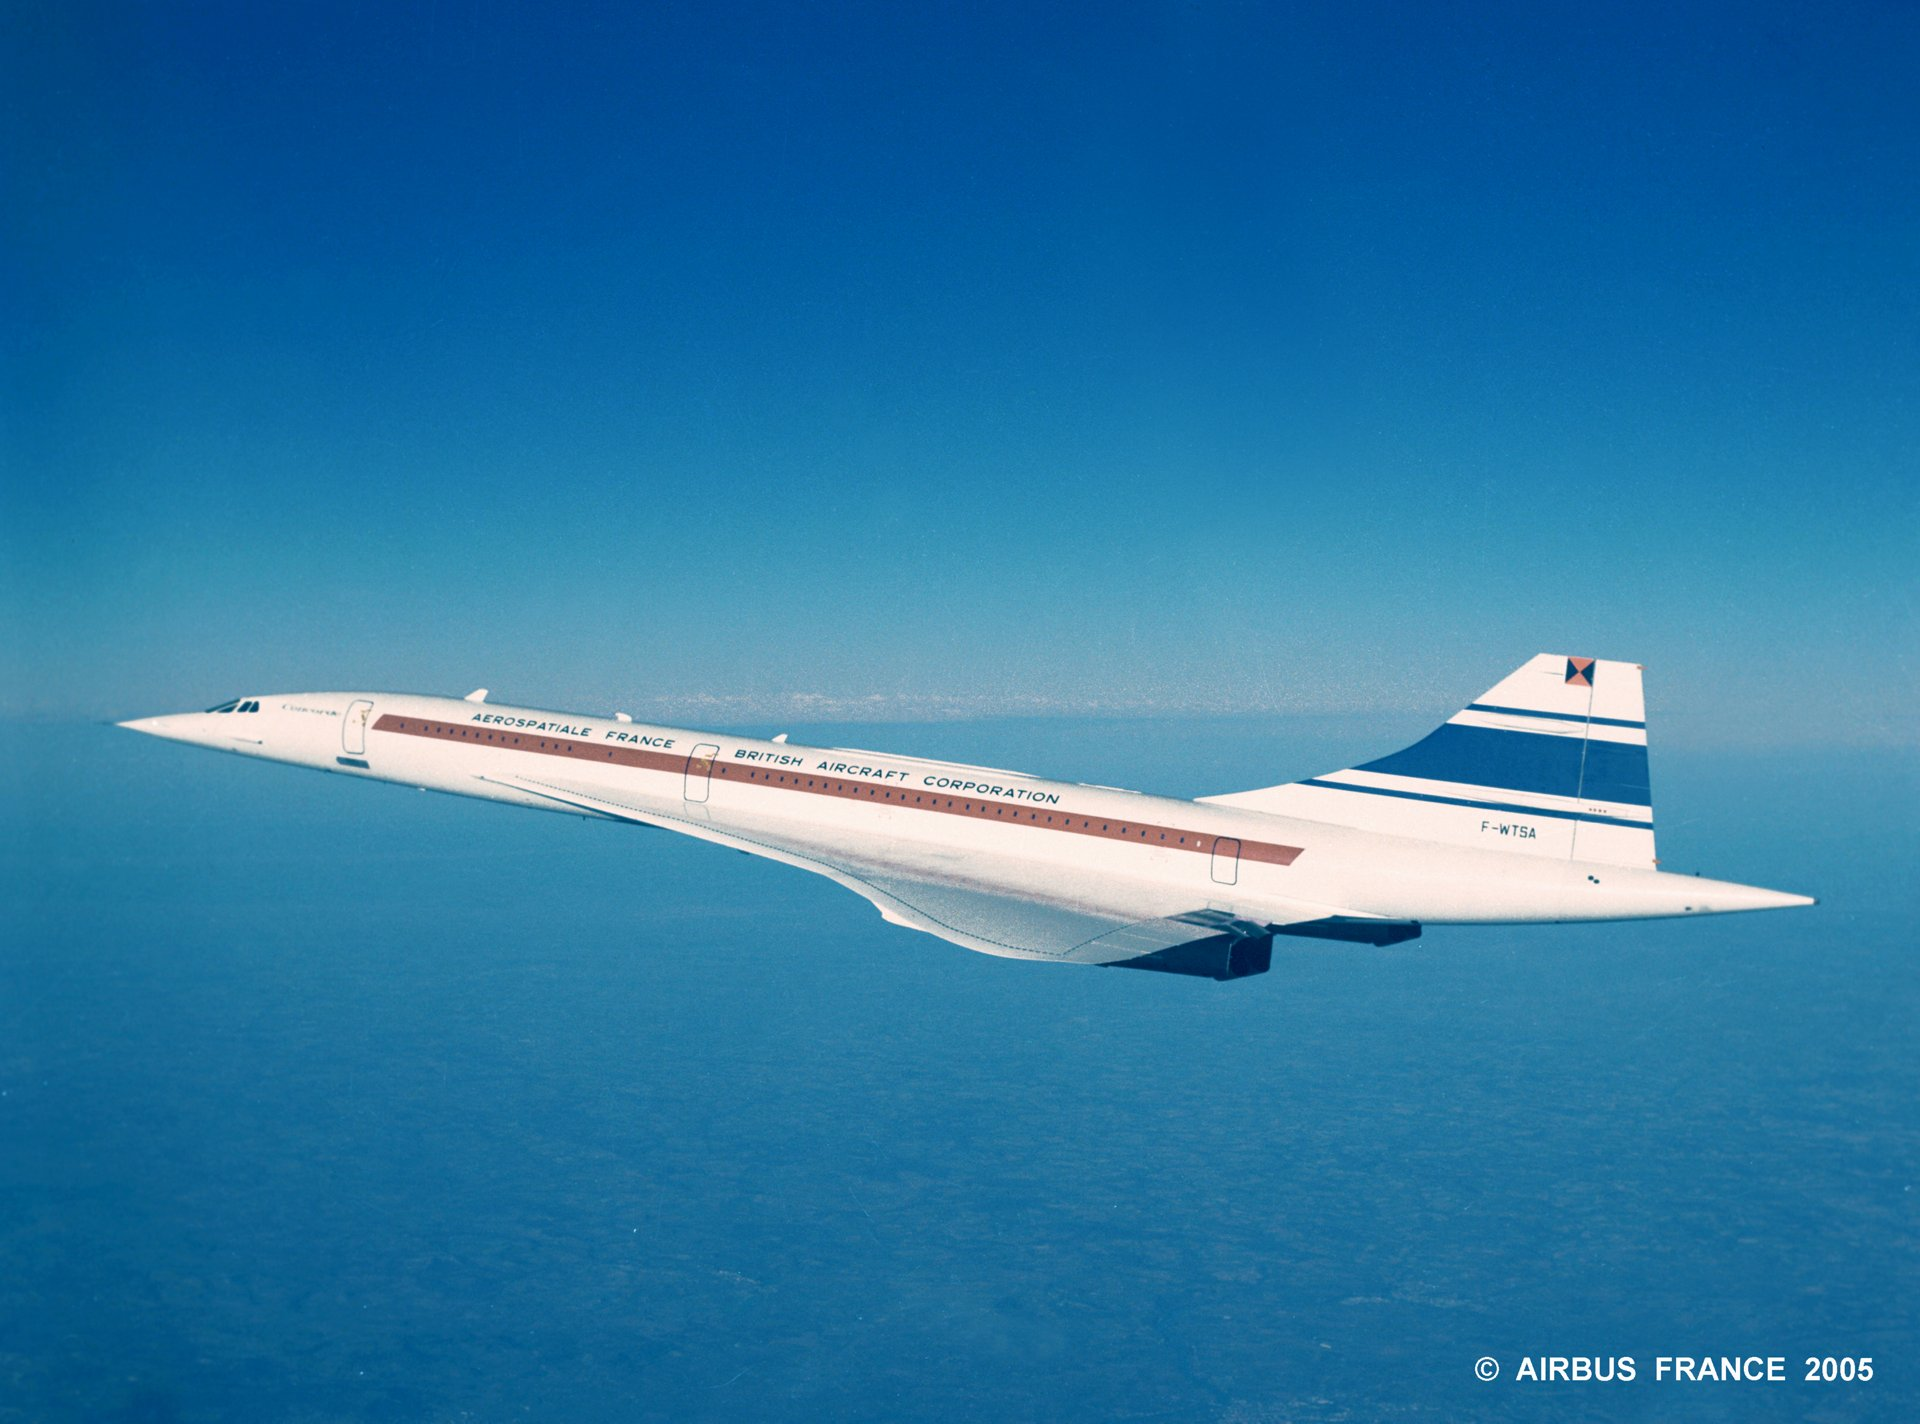 Concorde Aerospatiale France - British Aircraft Corporation